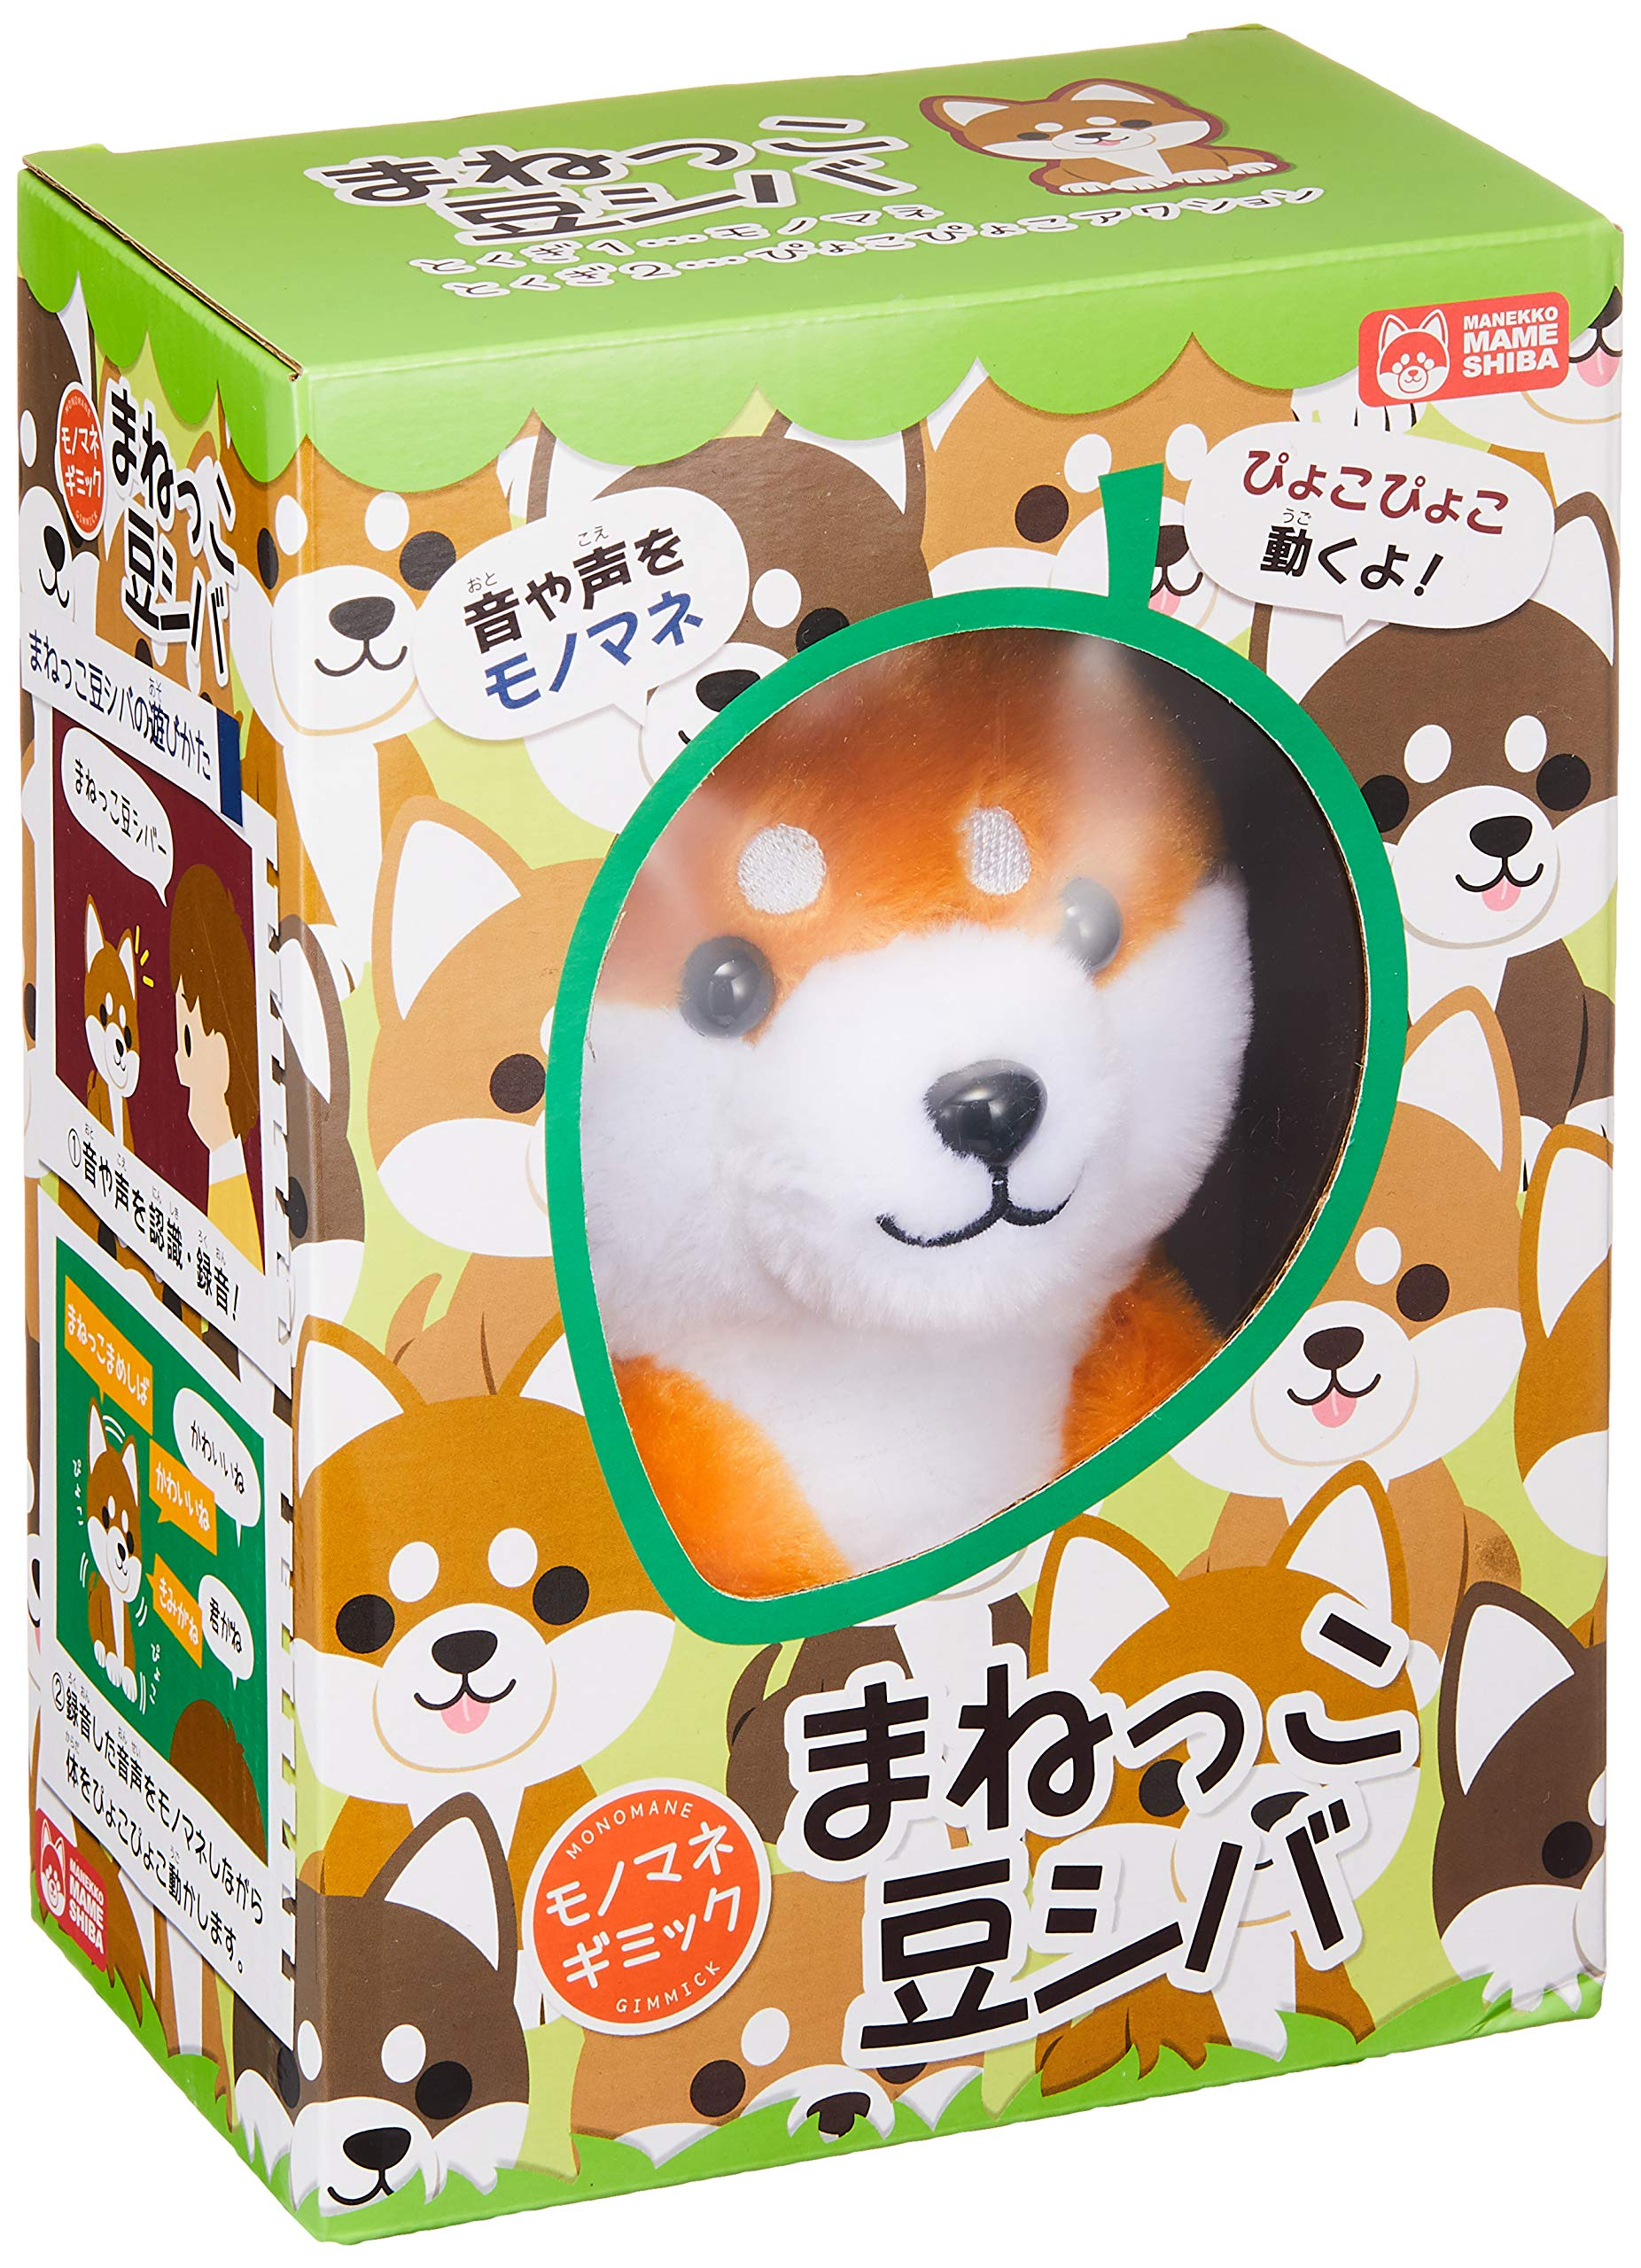 Ost Mimicry Pet Talking Toy Series Mame Shiba Inu by OTS (Image #3)